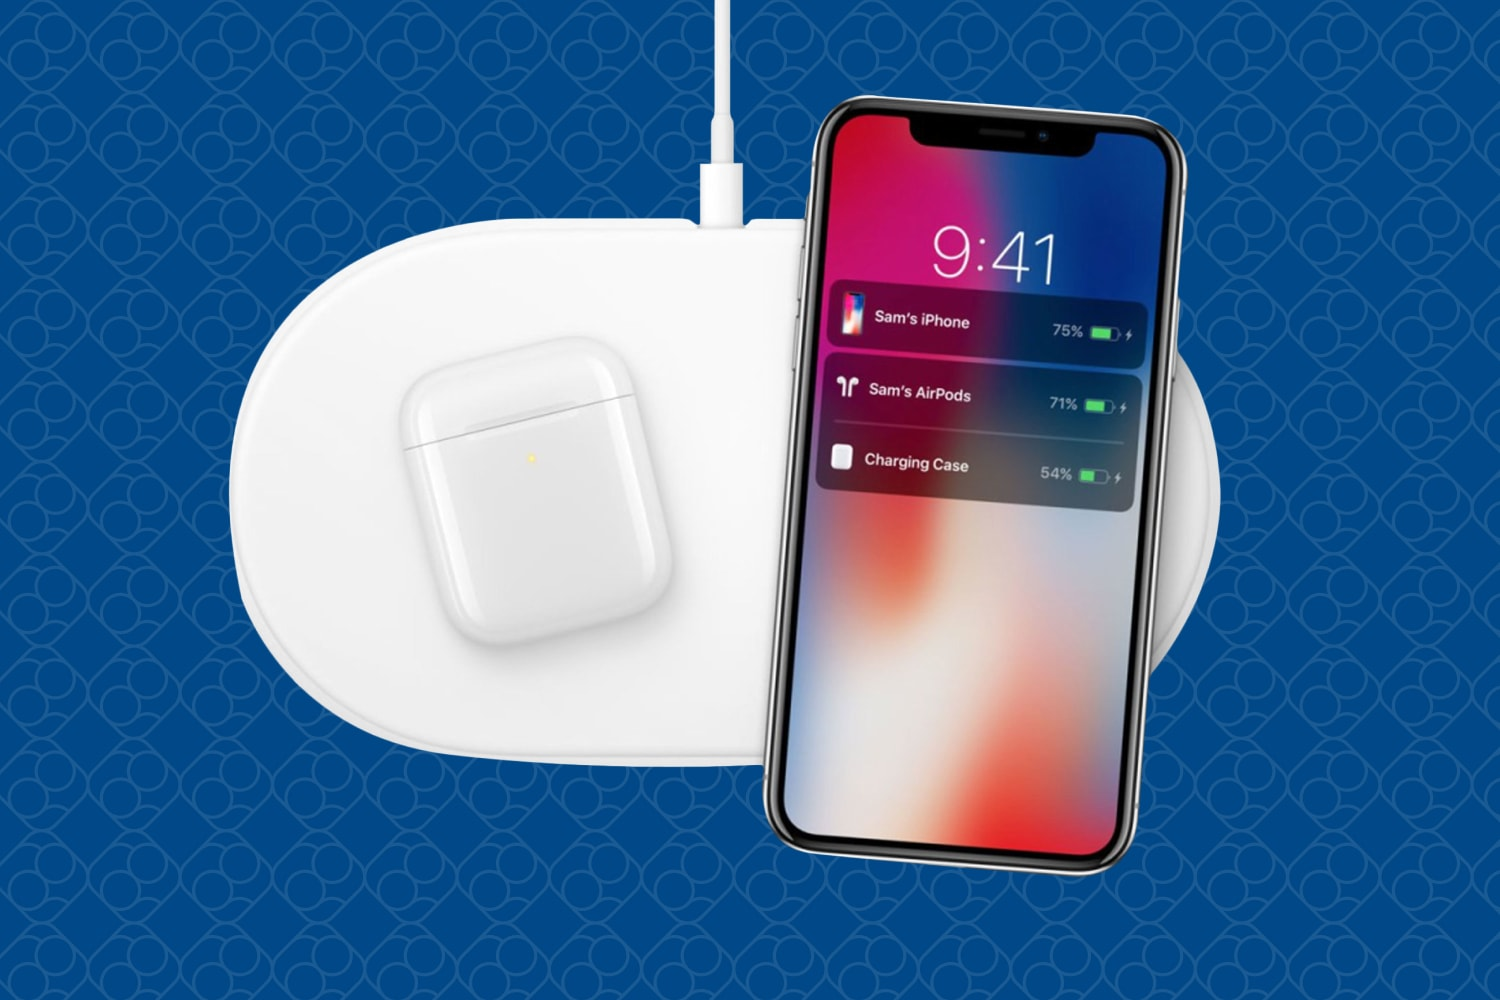 is-apple-s-airpower-mini-arriving-fall-2020-what-we-know-so-far-20200928-1